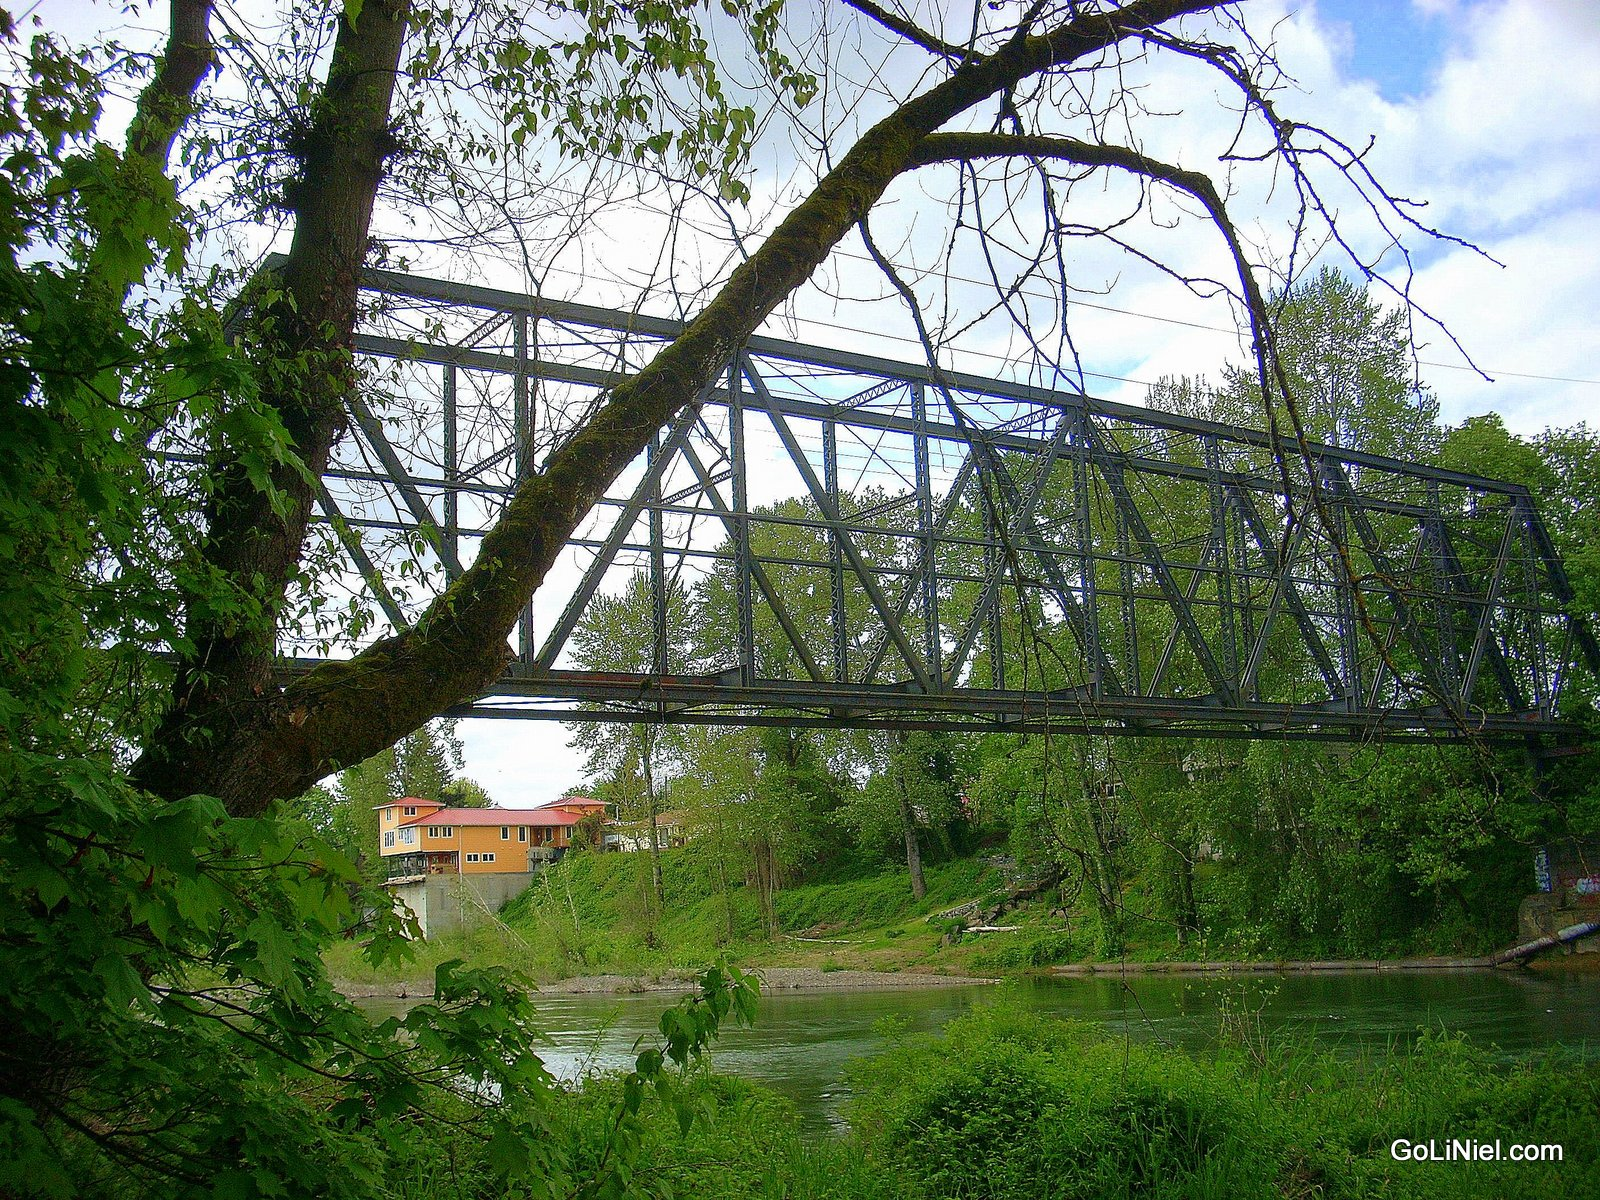 SP bridge over the Clackamas river in early summer